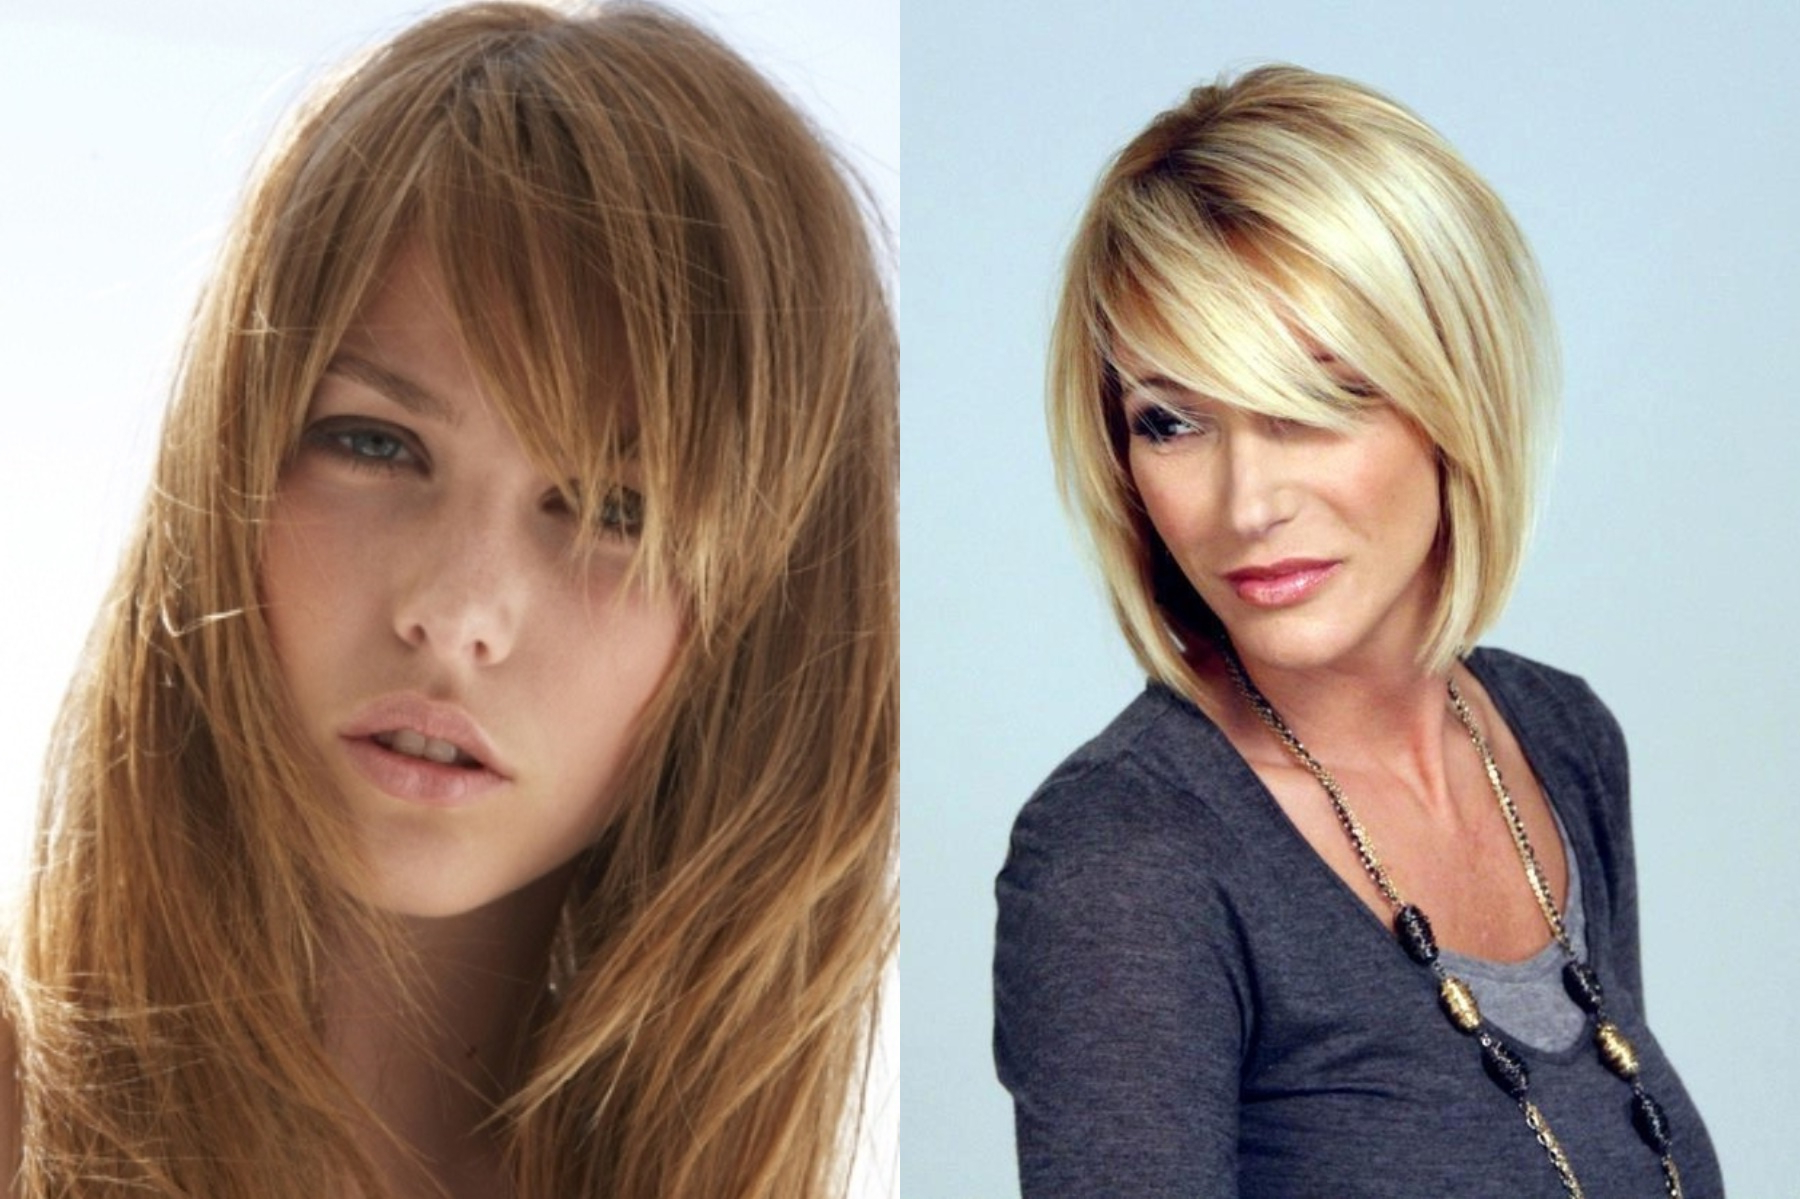 Most Popular Ragged Bob Asian Hairstyles Pertaining To Latest Ragged Bangs 2018 For Women's Hairstyles (View 16 of 20)